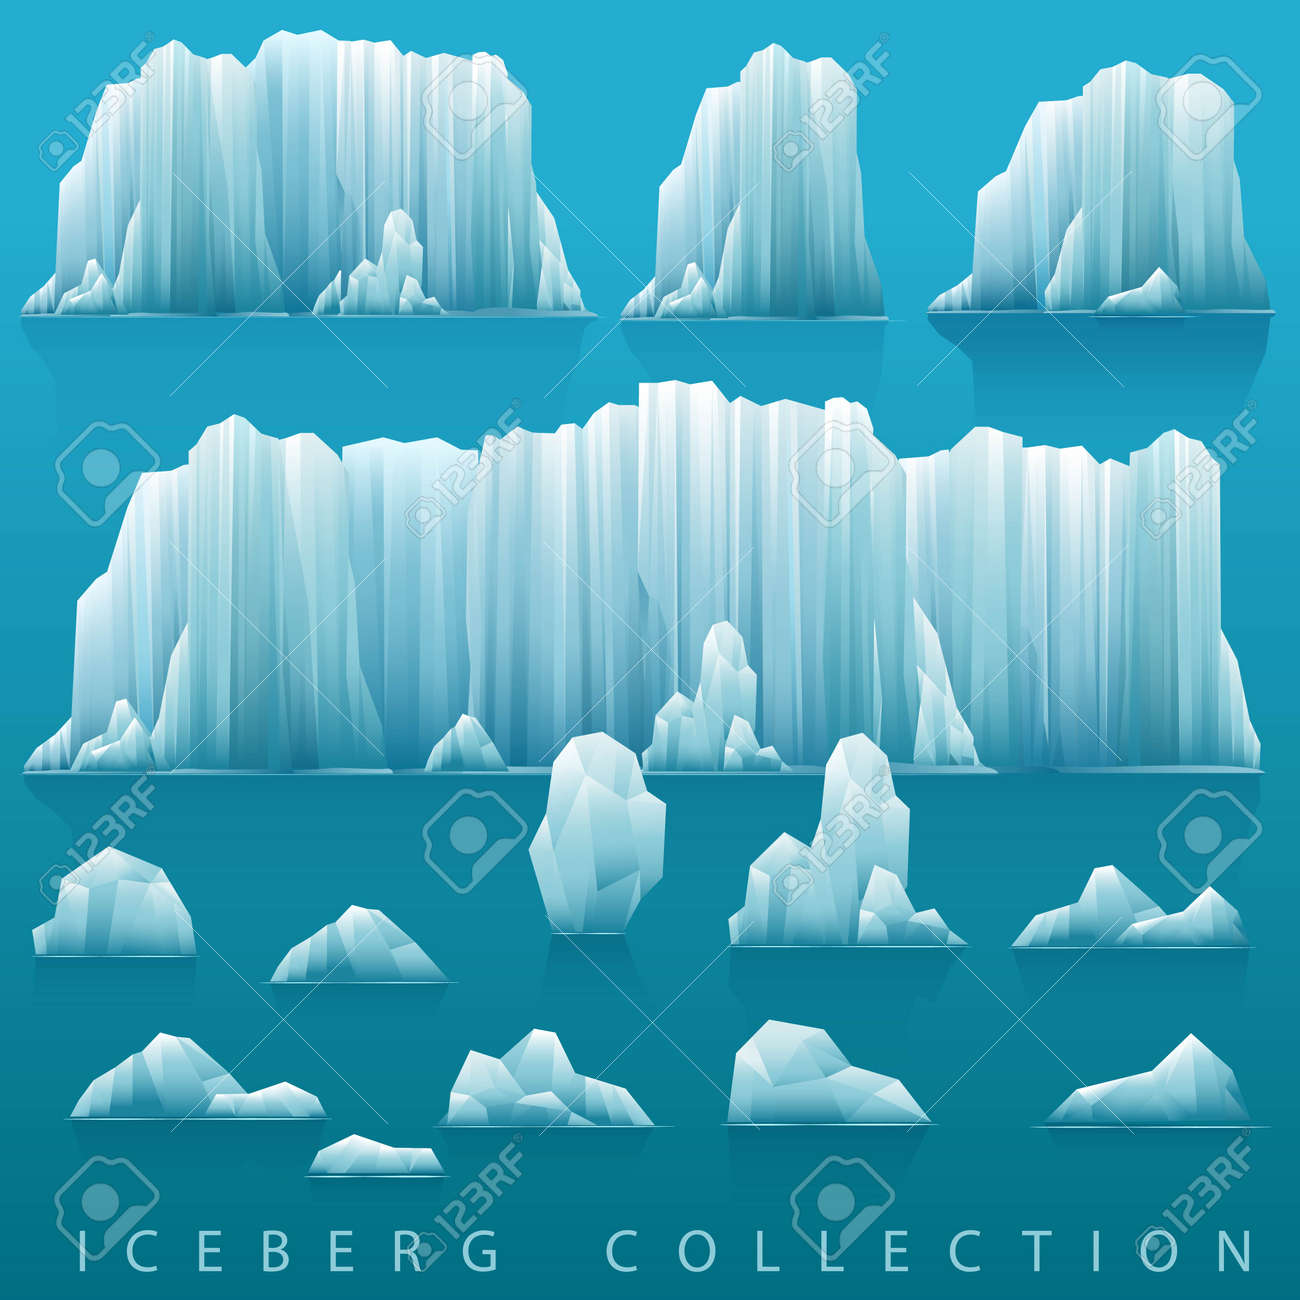 Background image parallax - Parallax Background Of Icebergs And Sea Vector Illustration Arctic Or Antarctic Landscape Stock